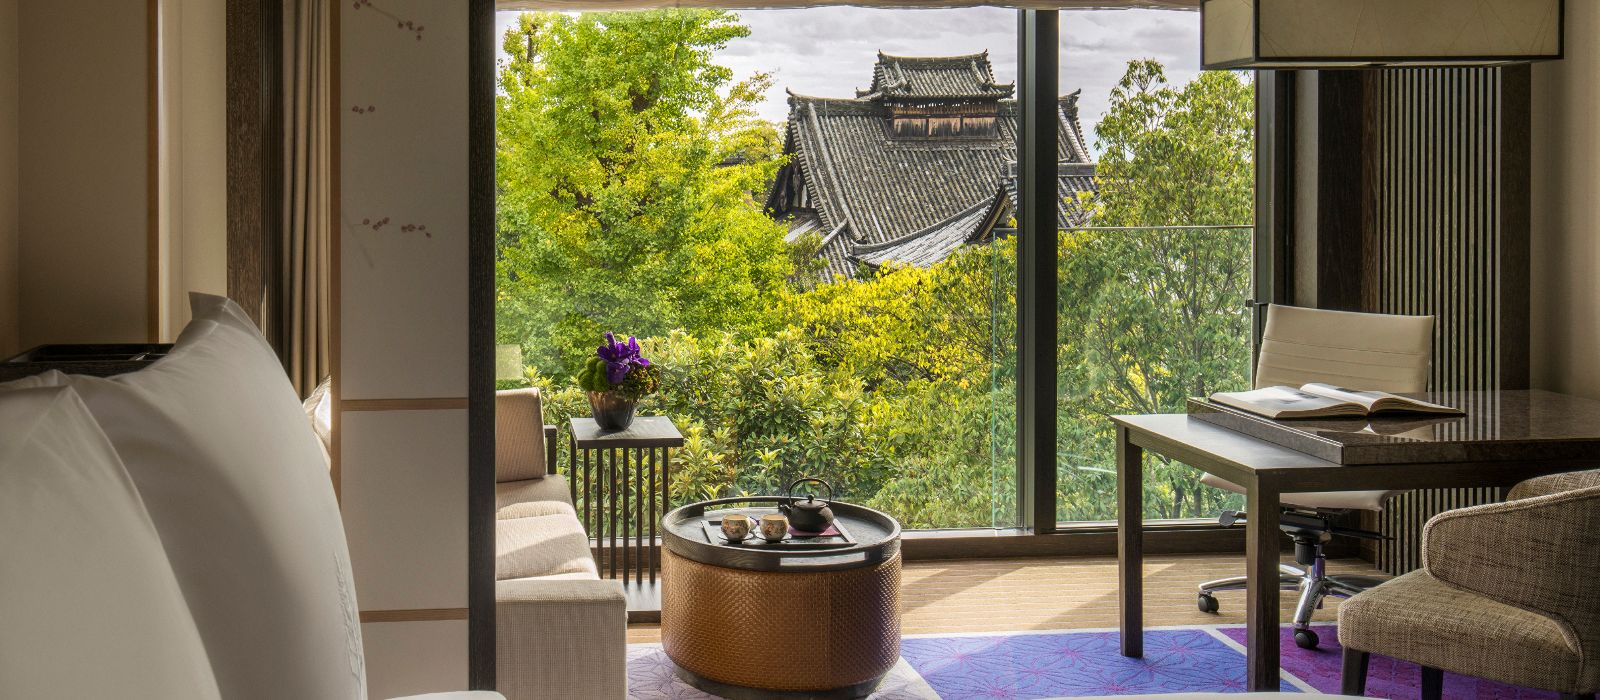 Hotel Four Seasons  Kyoto Japan